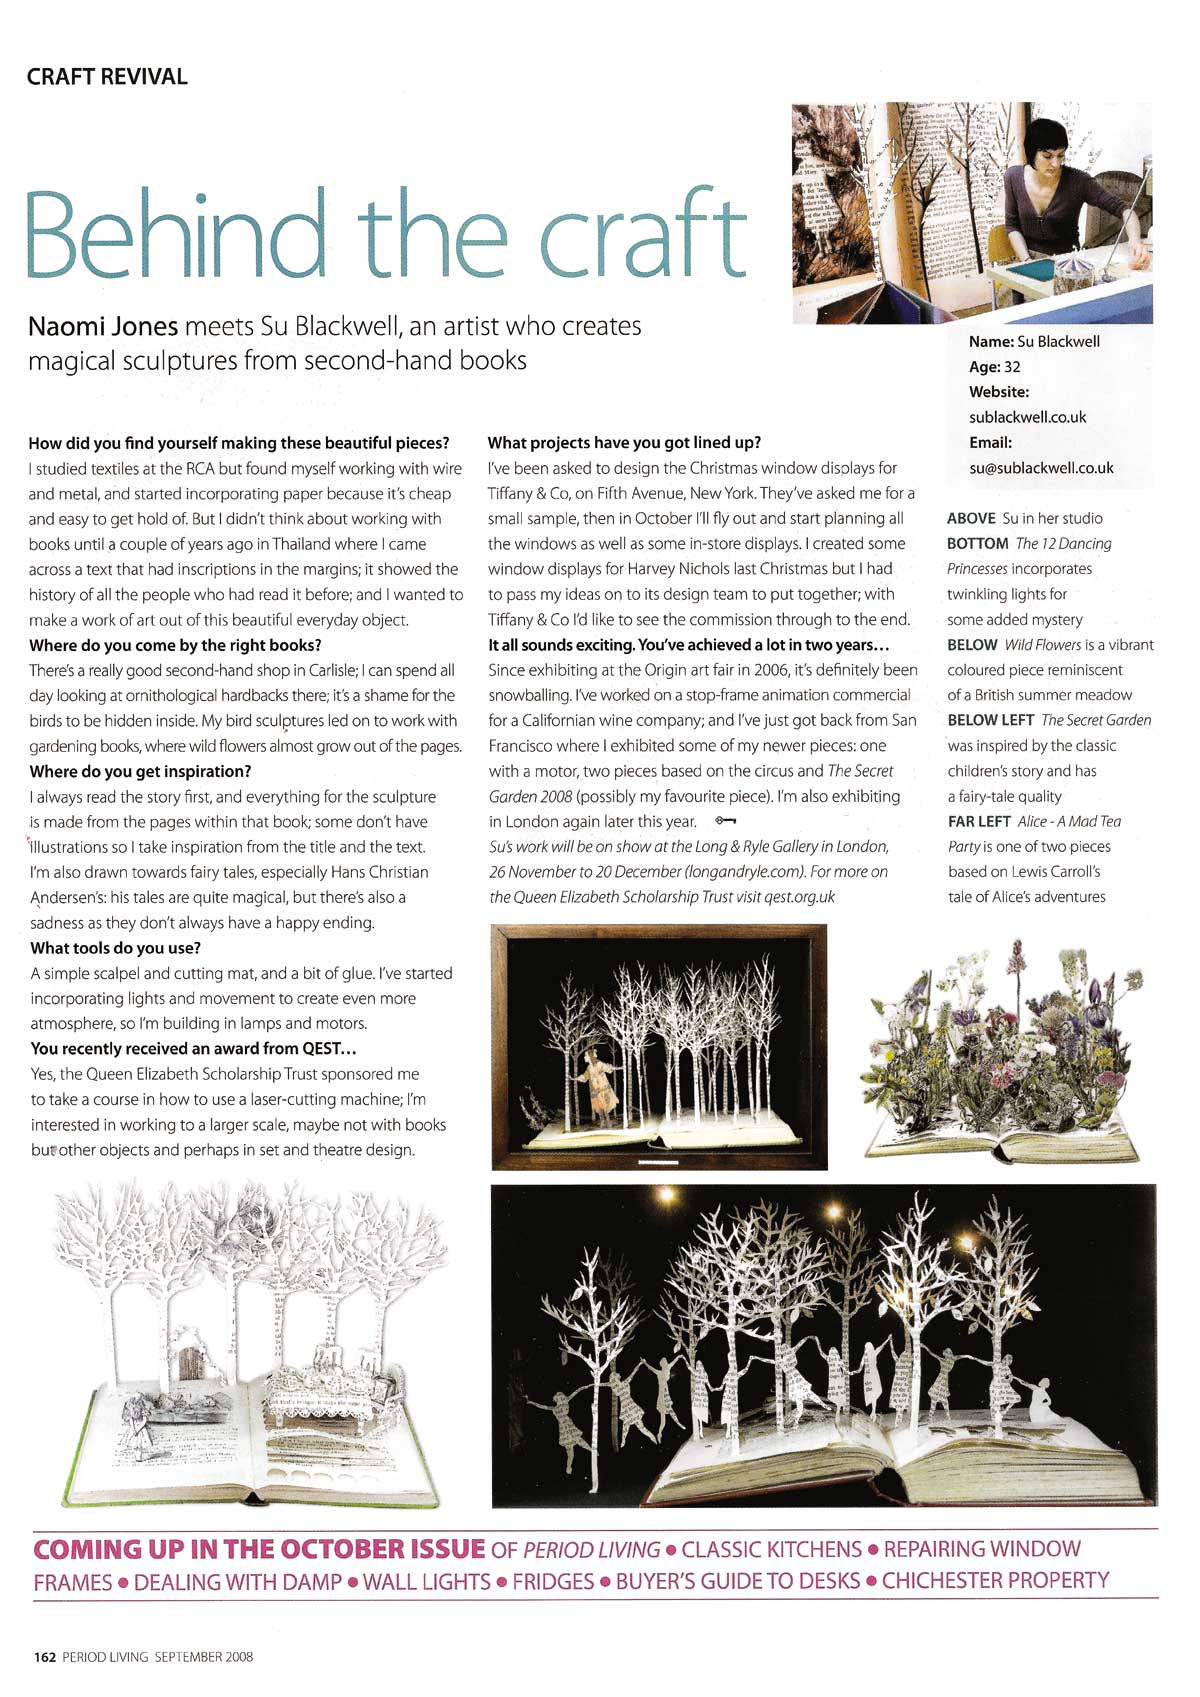 CraftReview-PeriodLivingSeot2008